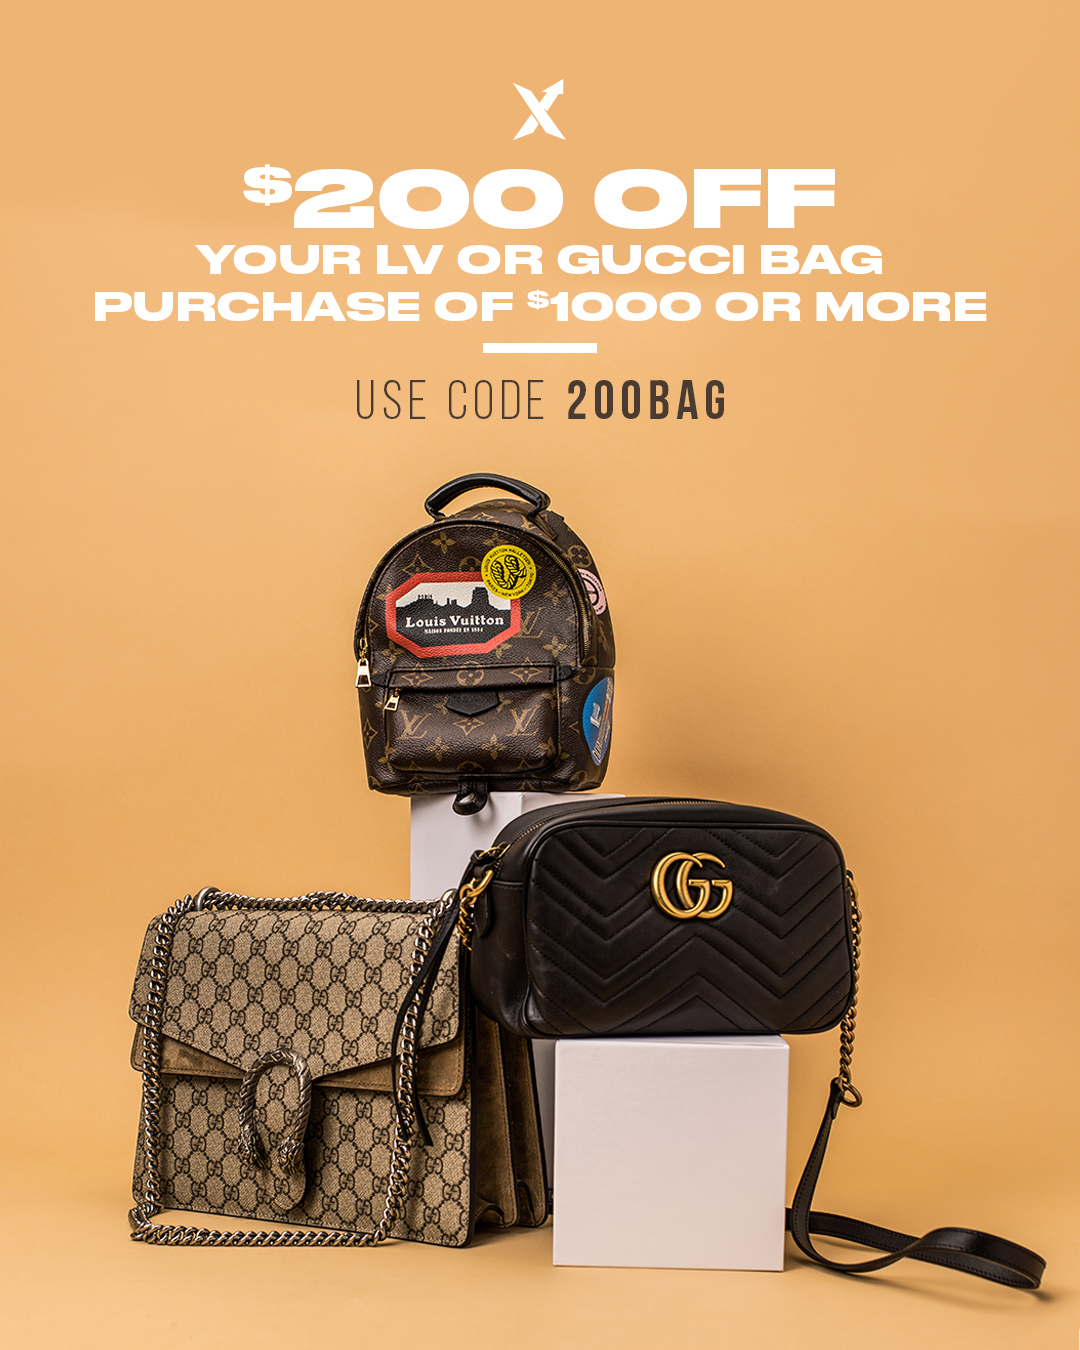 77eb5ecb236 Get  200 Off Louis Vuitton and Gucci Bags at StockX - StockX News